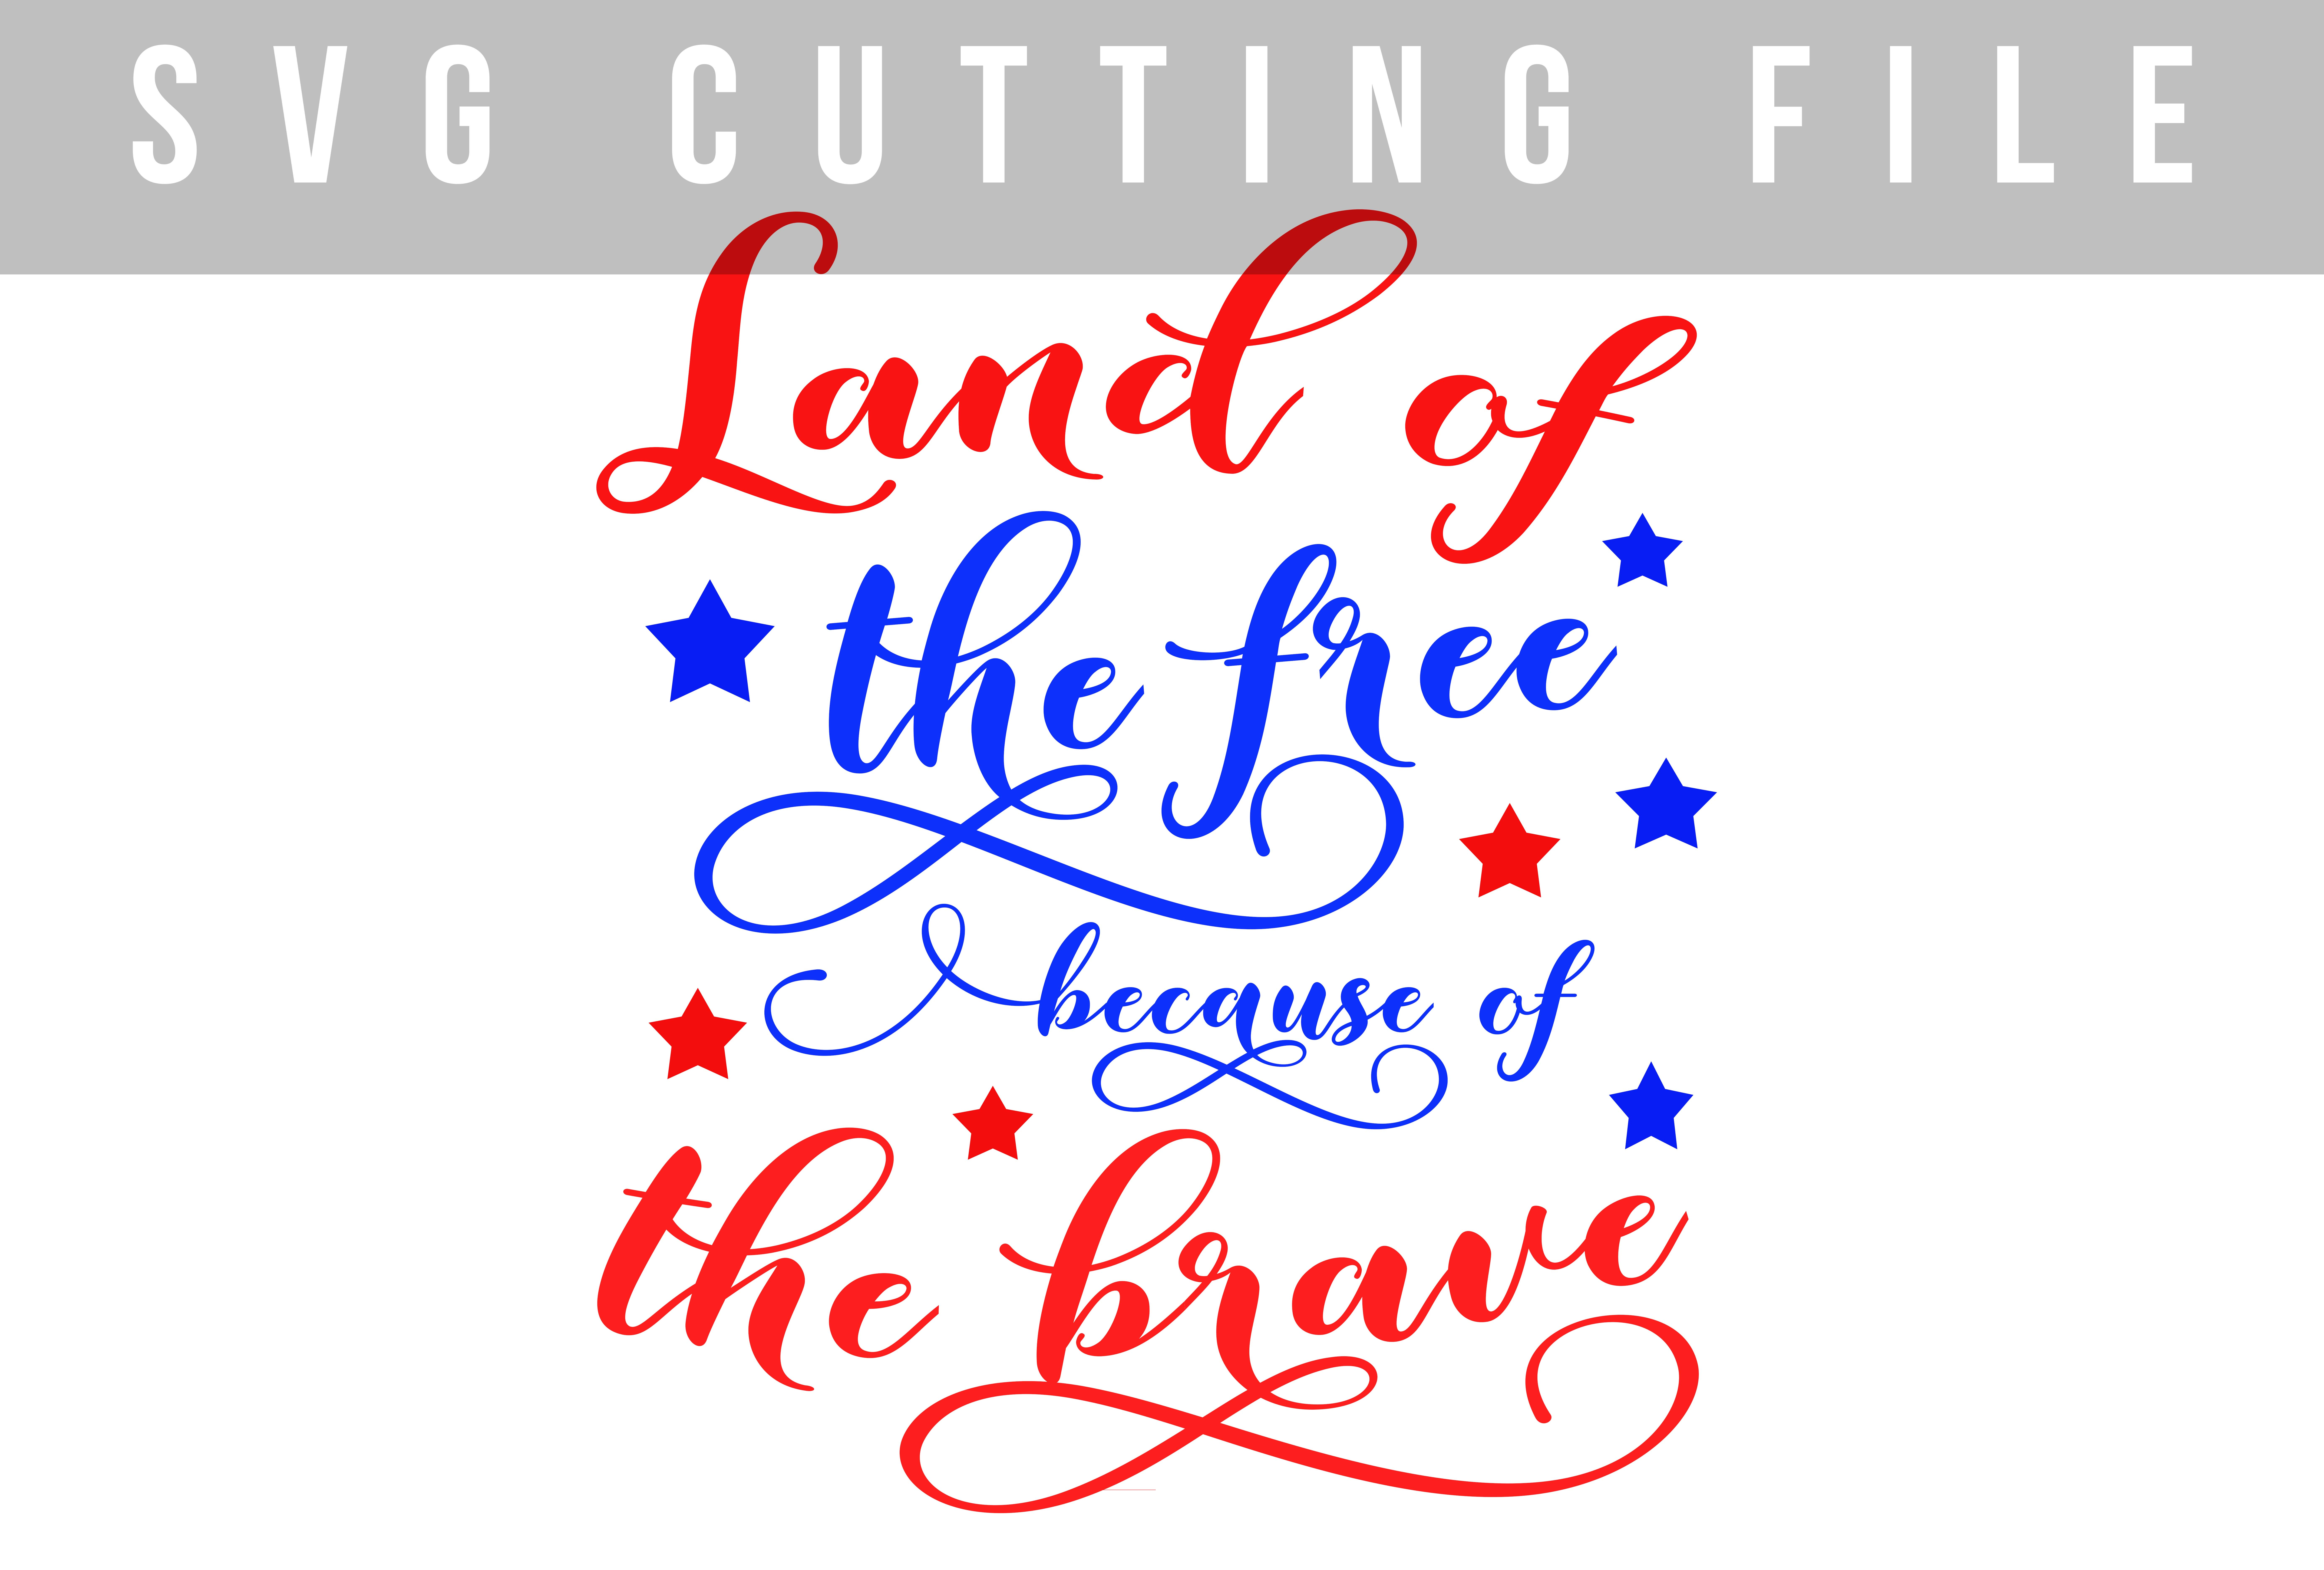 Land of the free because of the brave SVG PNG EPS DXF example image 5